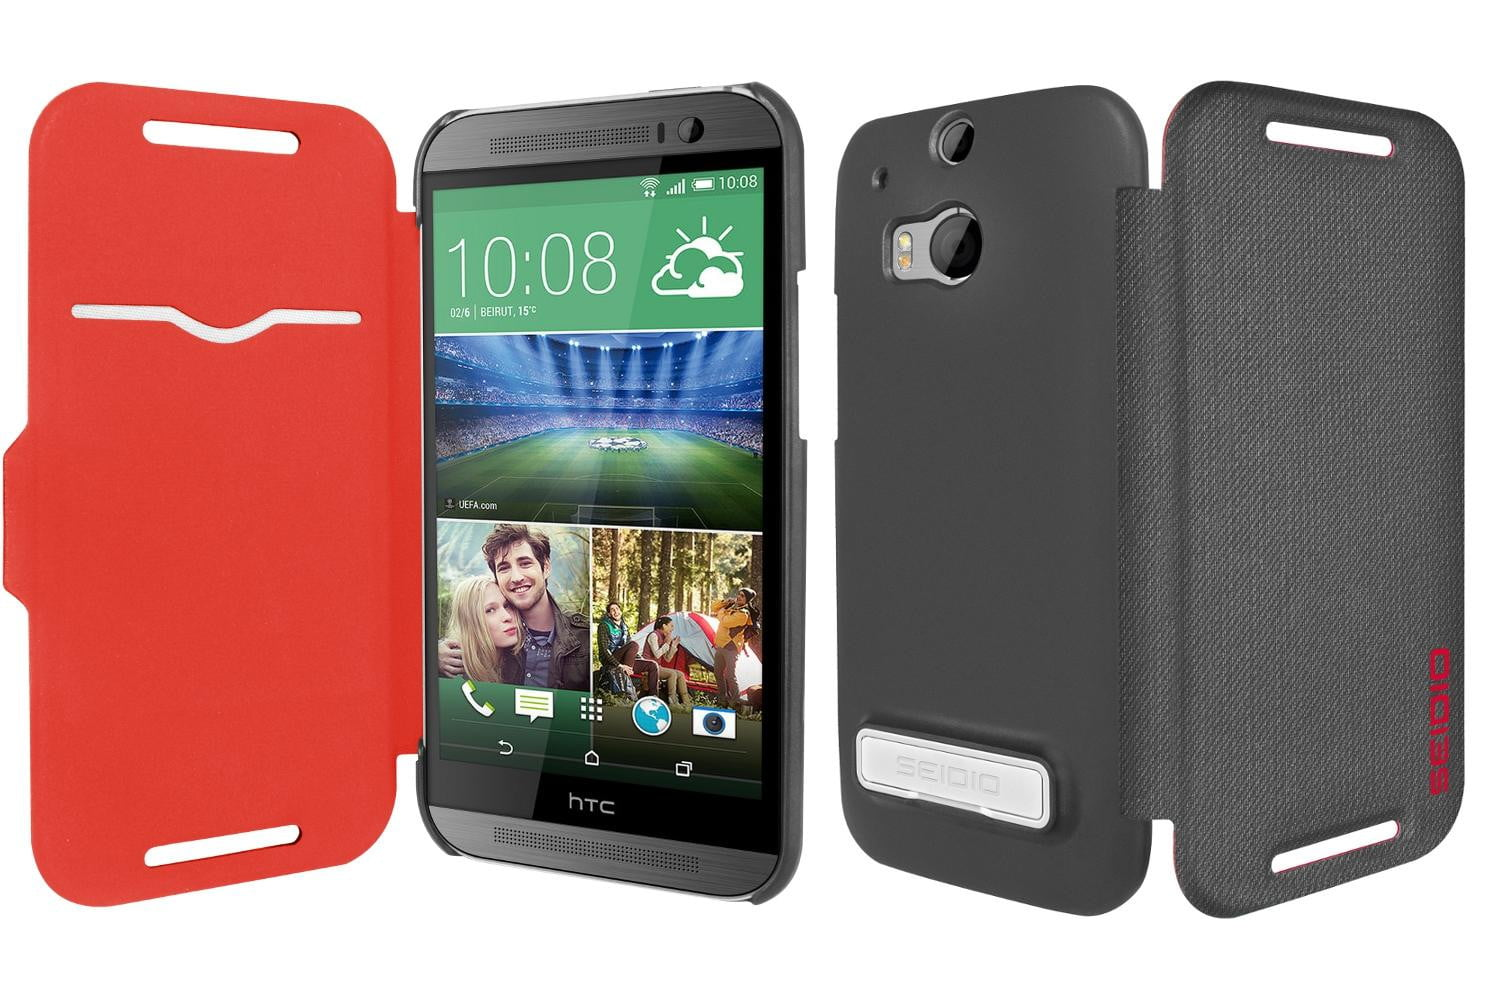 HTC phone case for htc droid dna : 20 Best HTC One M8 Cases And Covers Digital Trends - 1500x1000 - jpeg